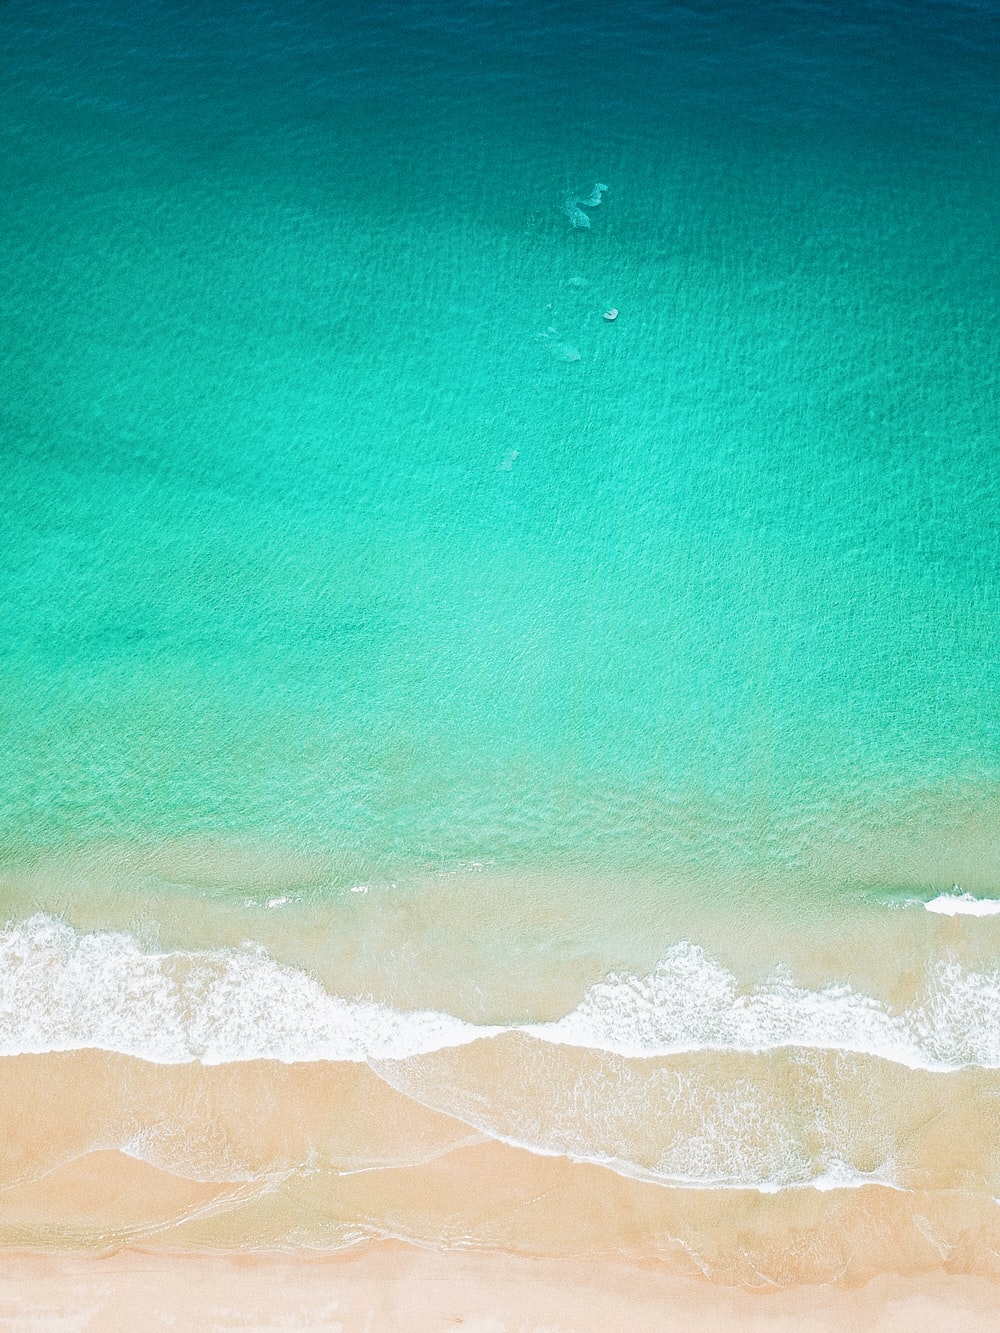 aerial photo of seashore clear green water